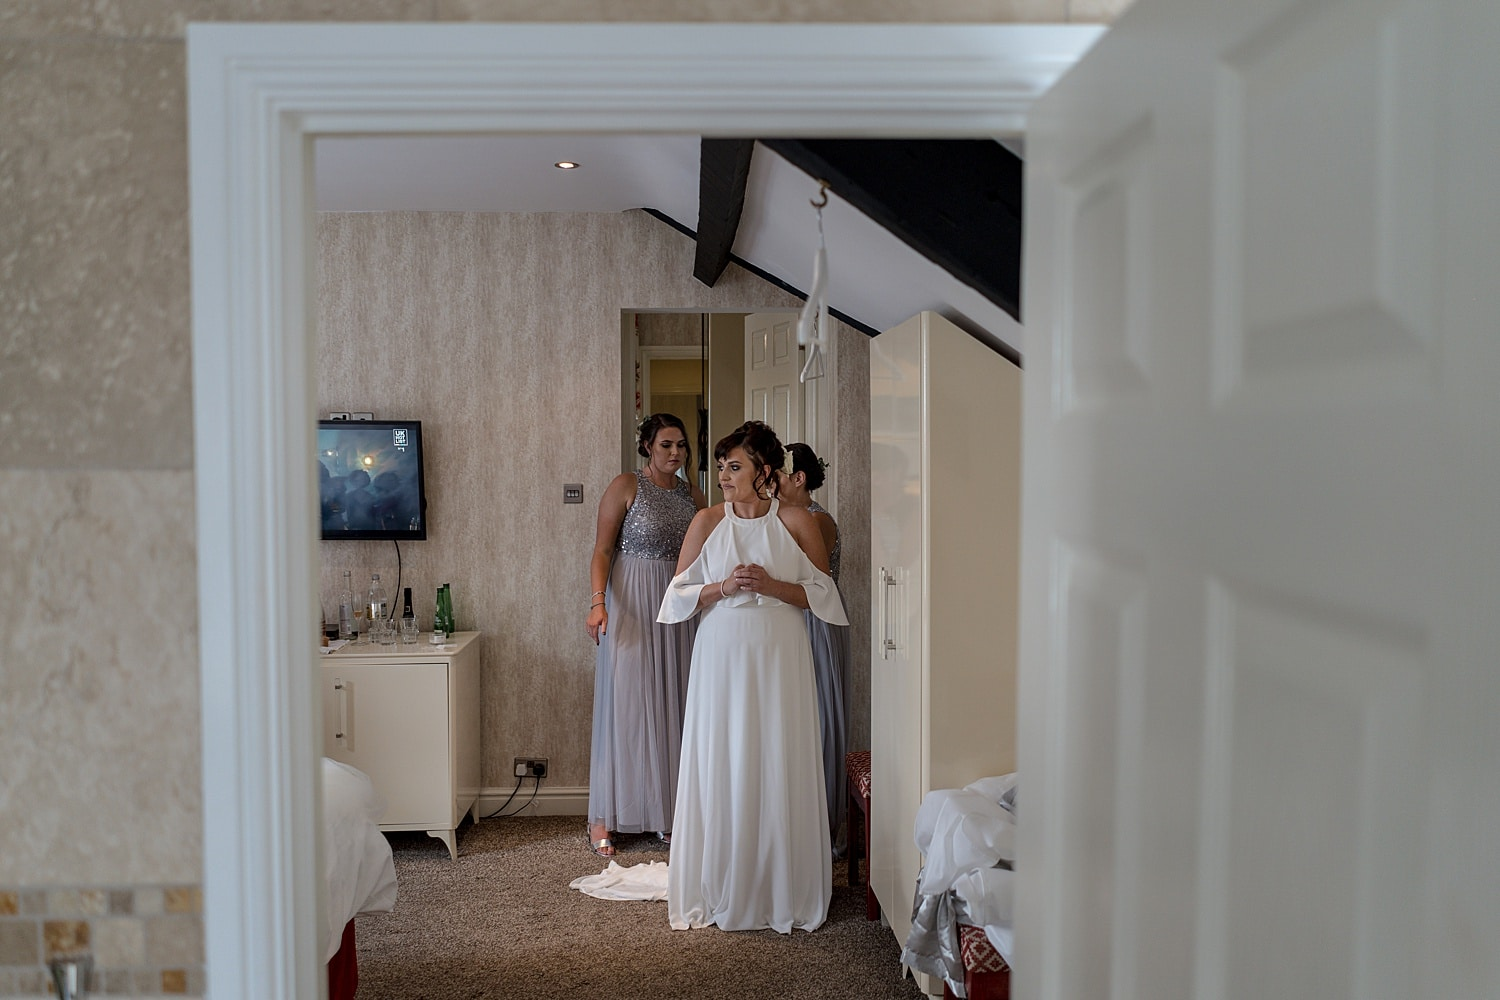 Bride's maids putting dress on